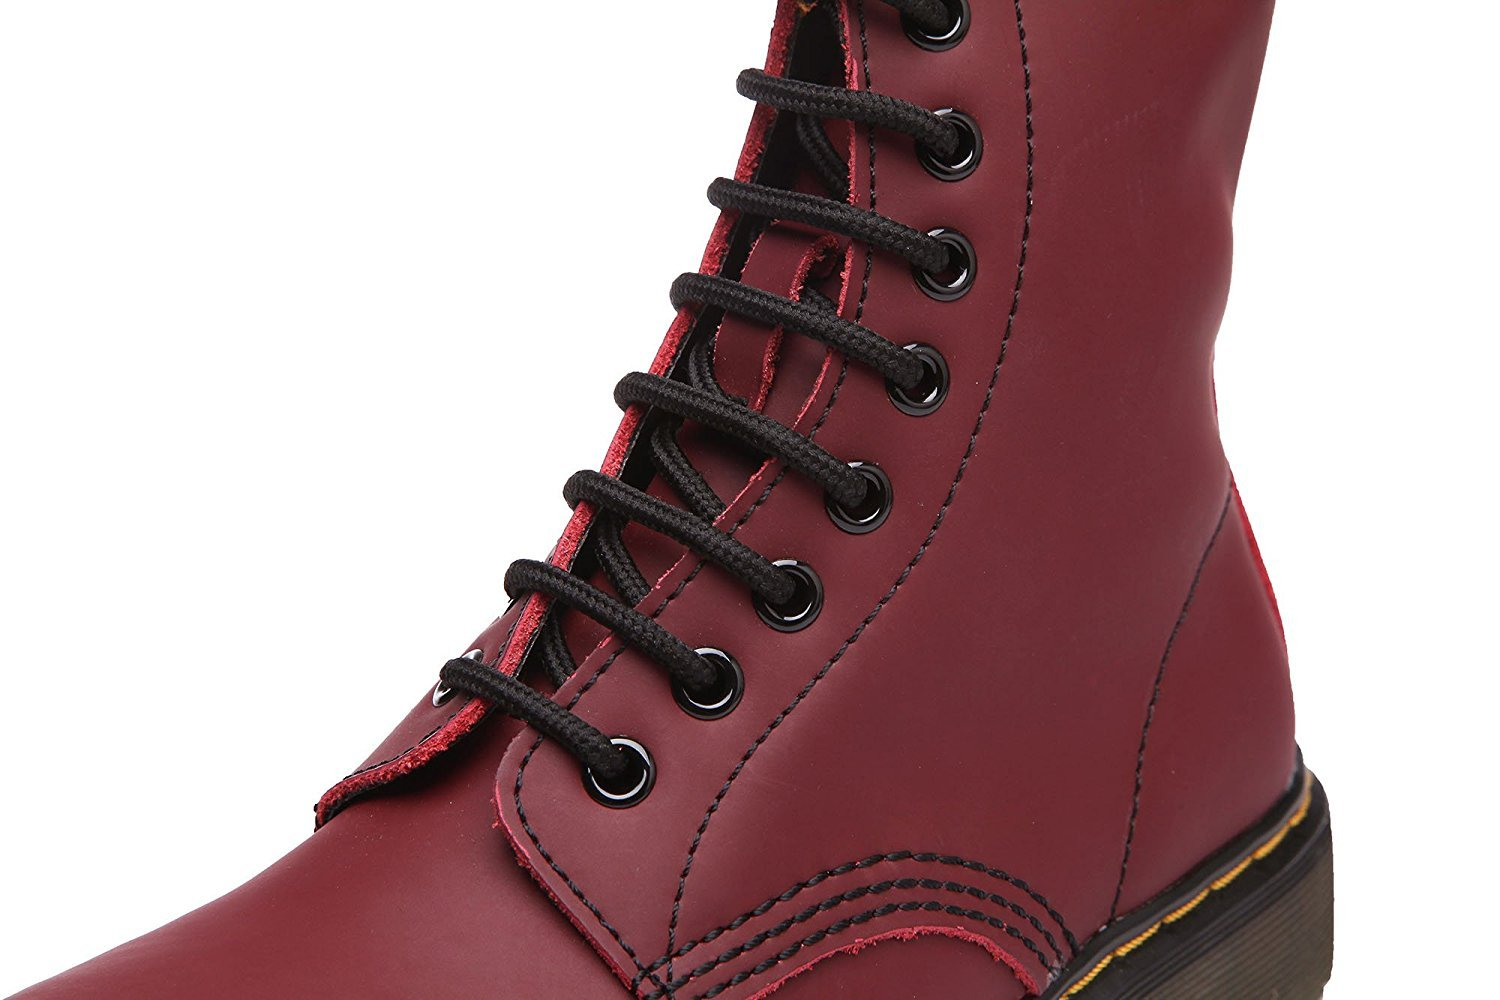 Modemoven Women's Round Toe Lase-up Ankle Boots Fashion Ladies Leather Combat Booties Fashion Boots Martens Boots B06XNNQJCG 6.5 B(M) US|Cherry Red 4c2538